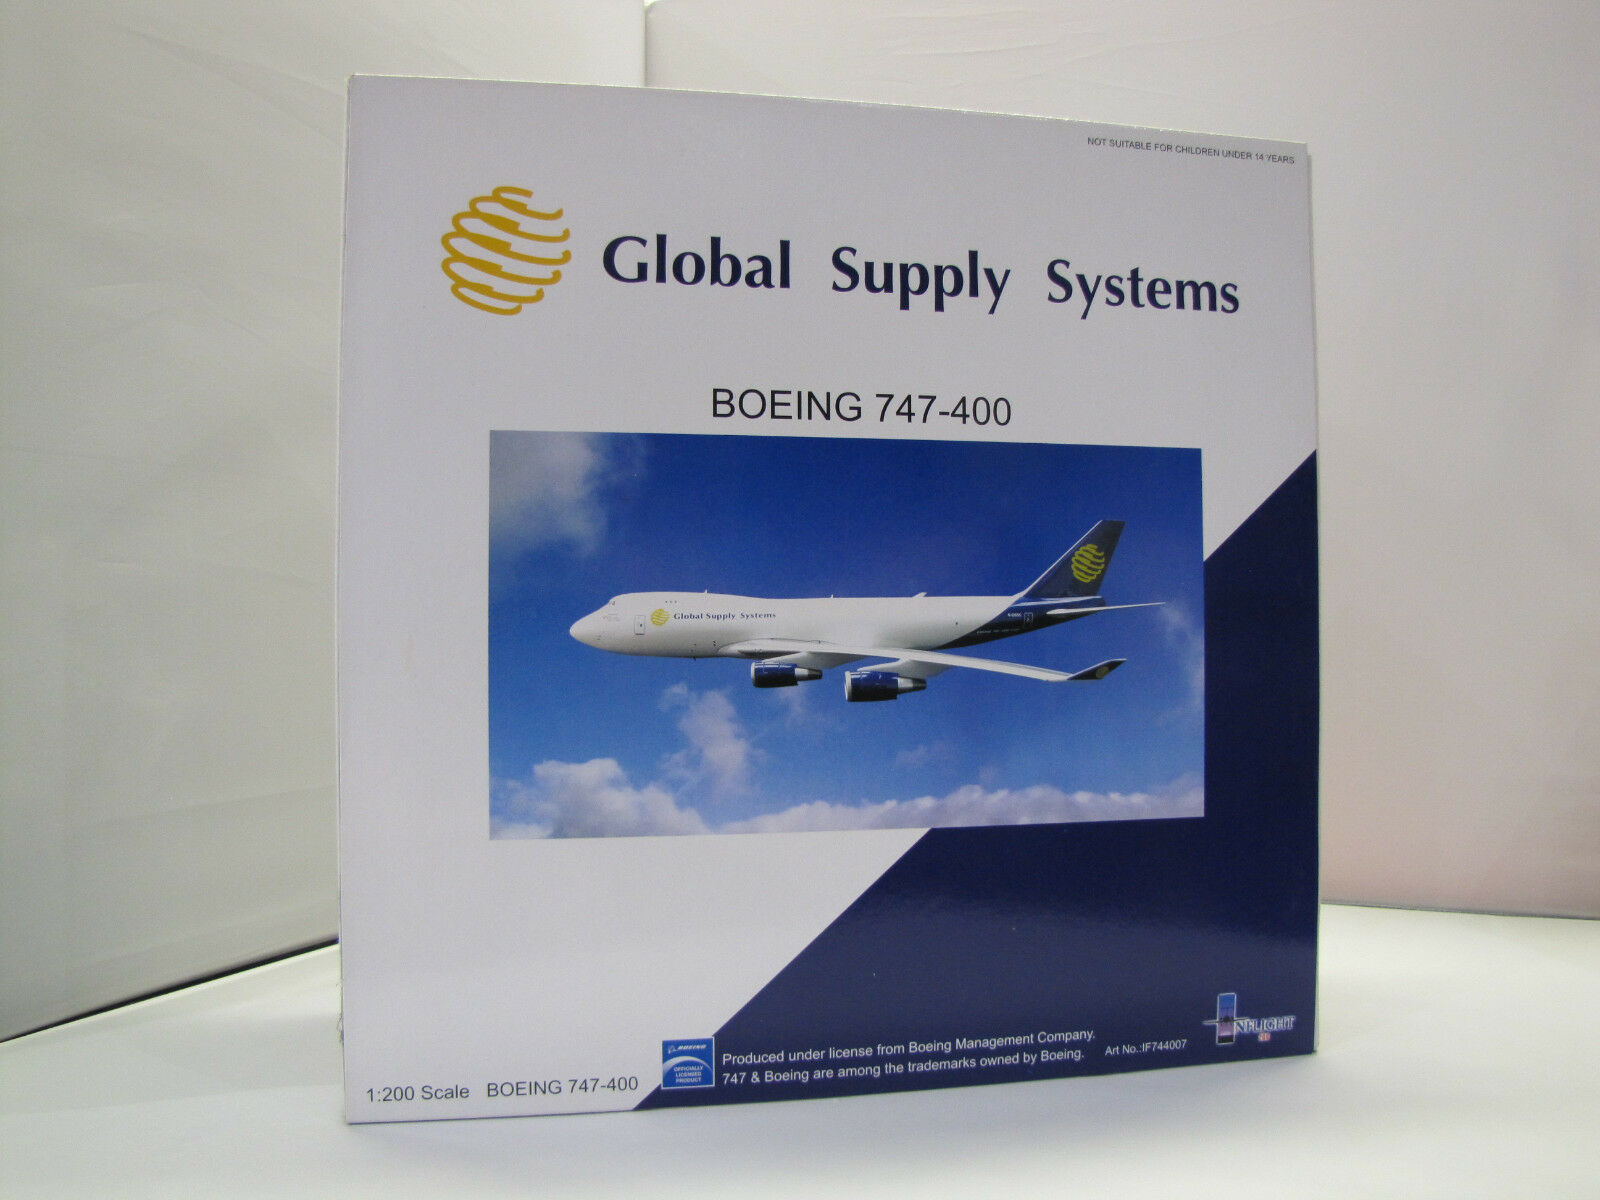 If744007-inflight boeing 747-400 - Global Supply Systems - 1 200